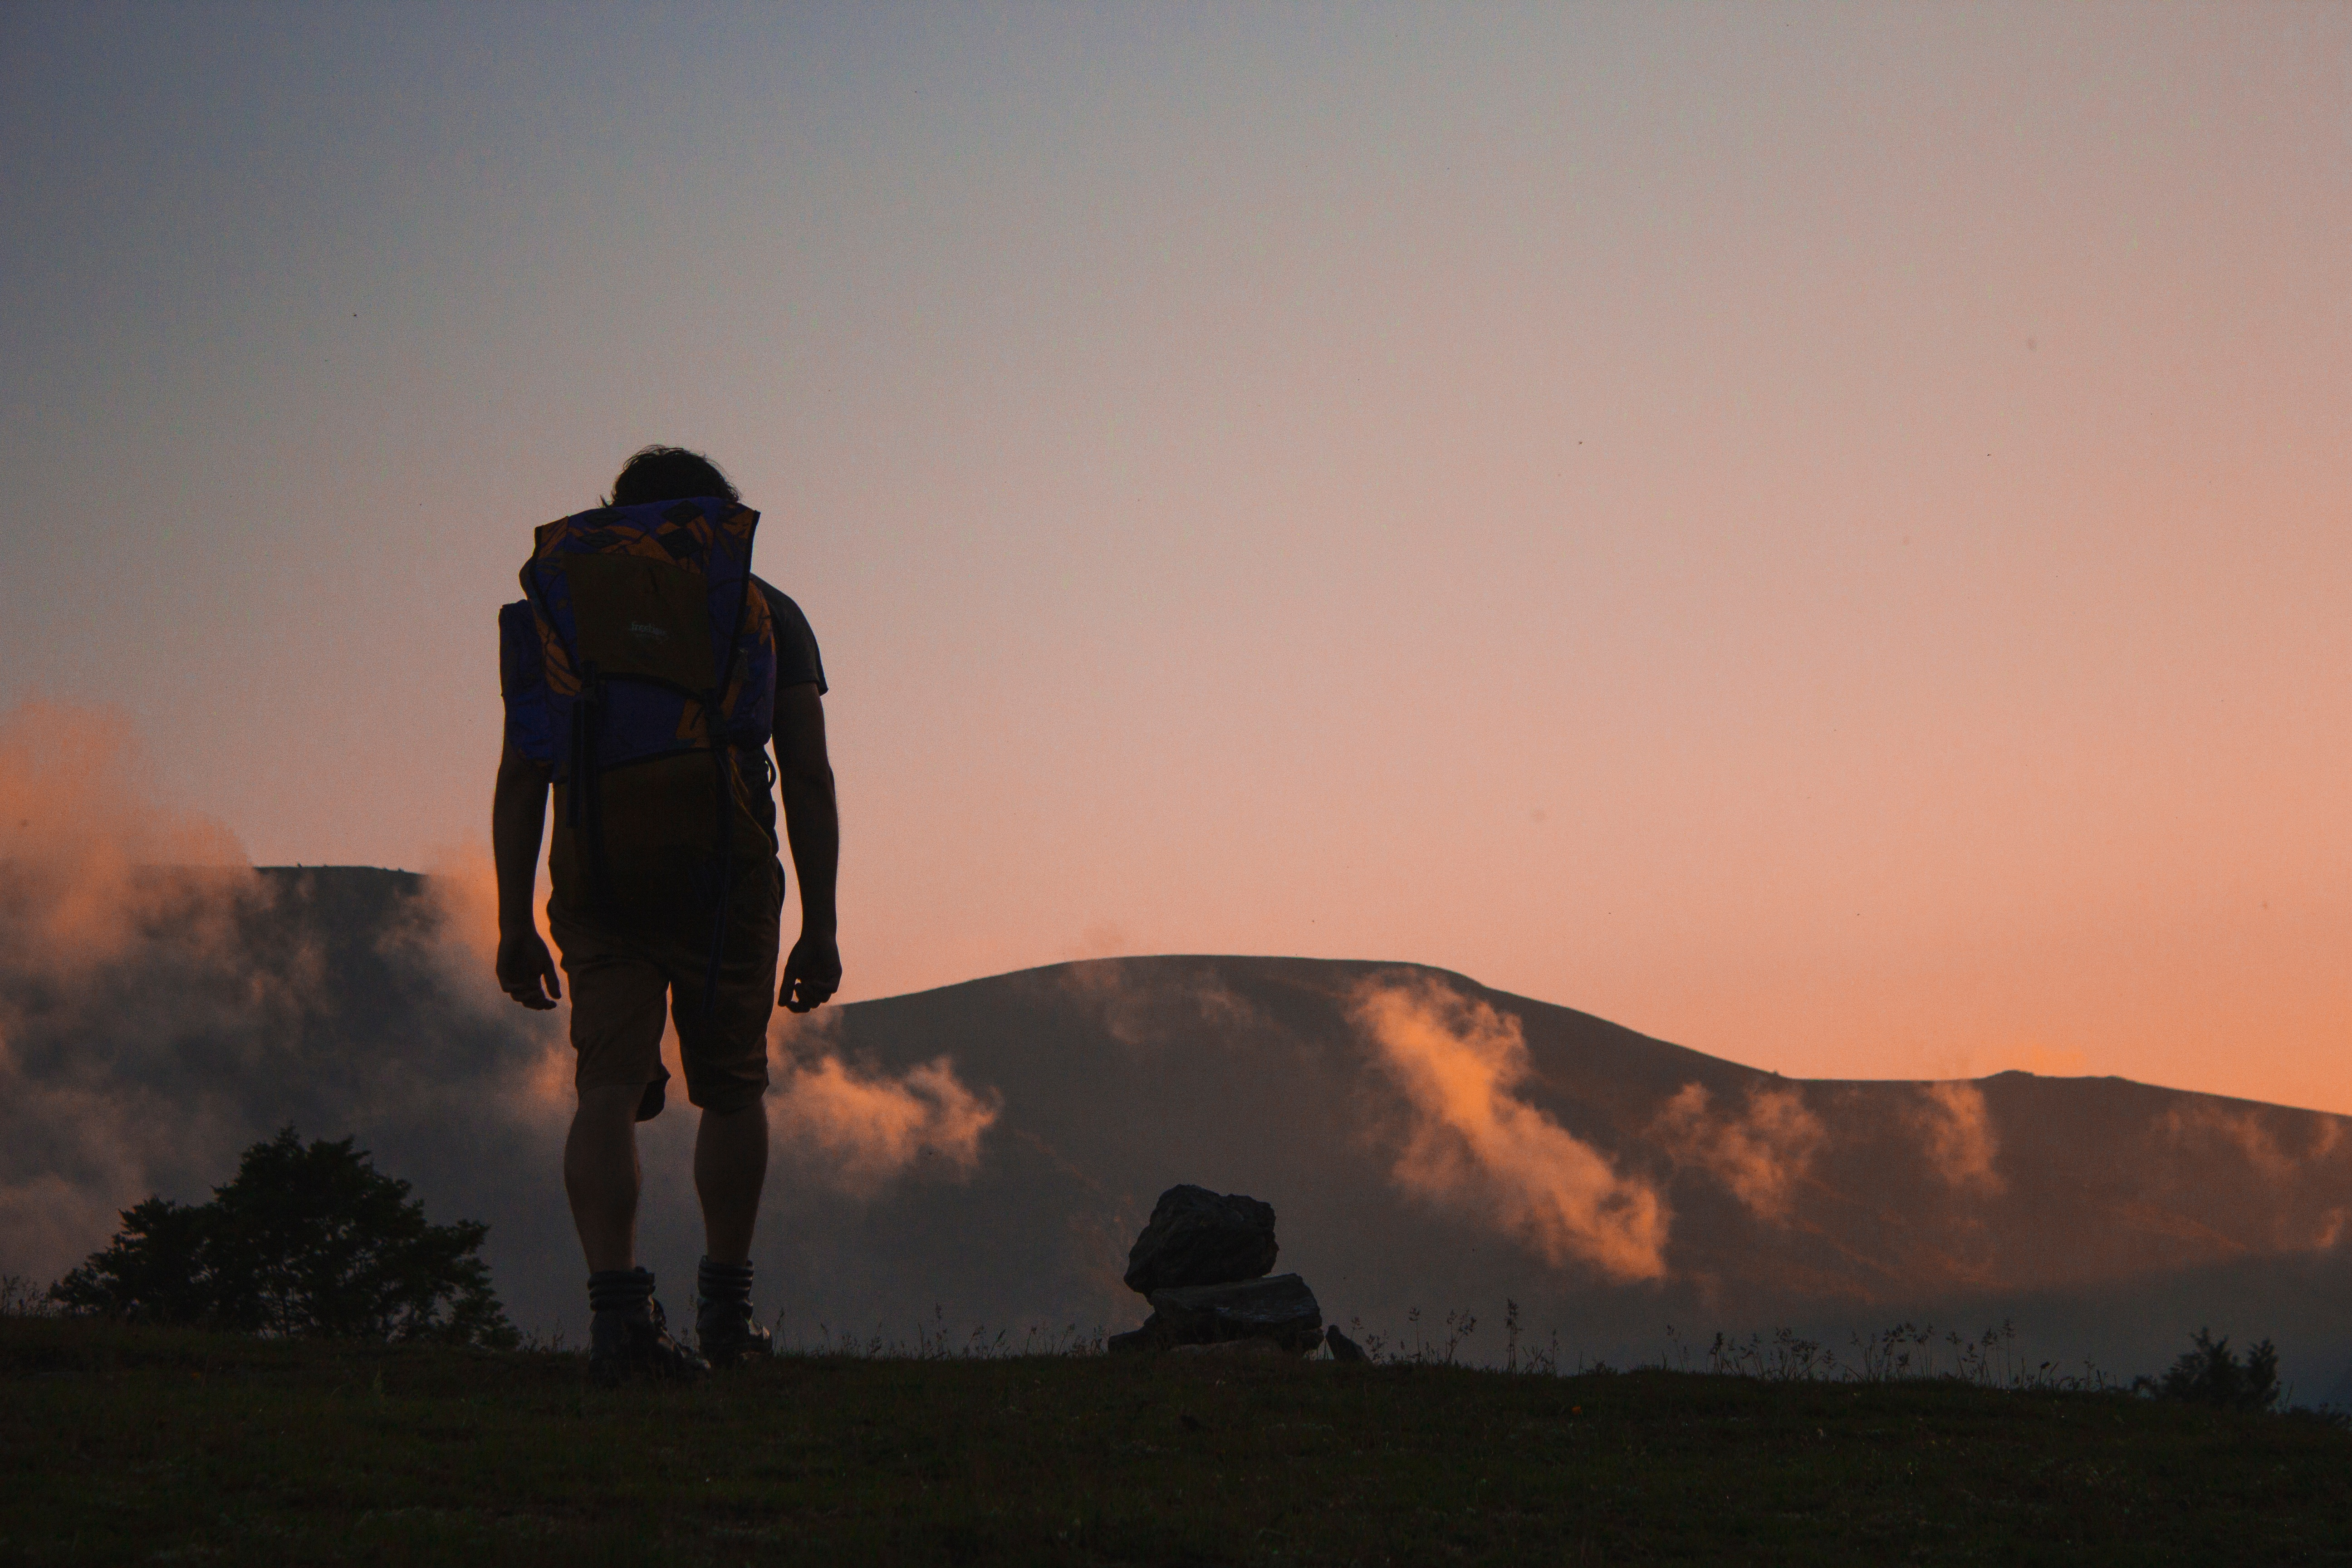 The Climb: Stop & Evaluate [podcast]